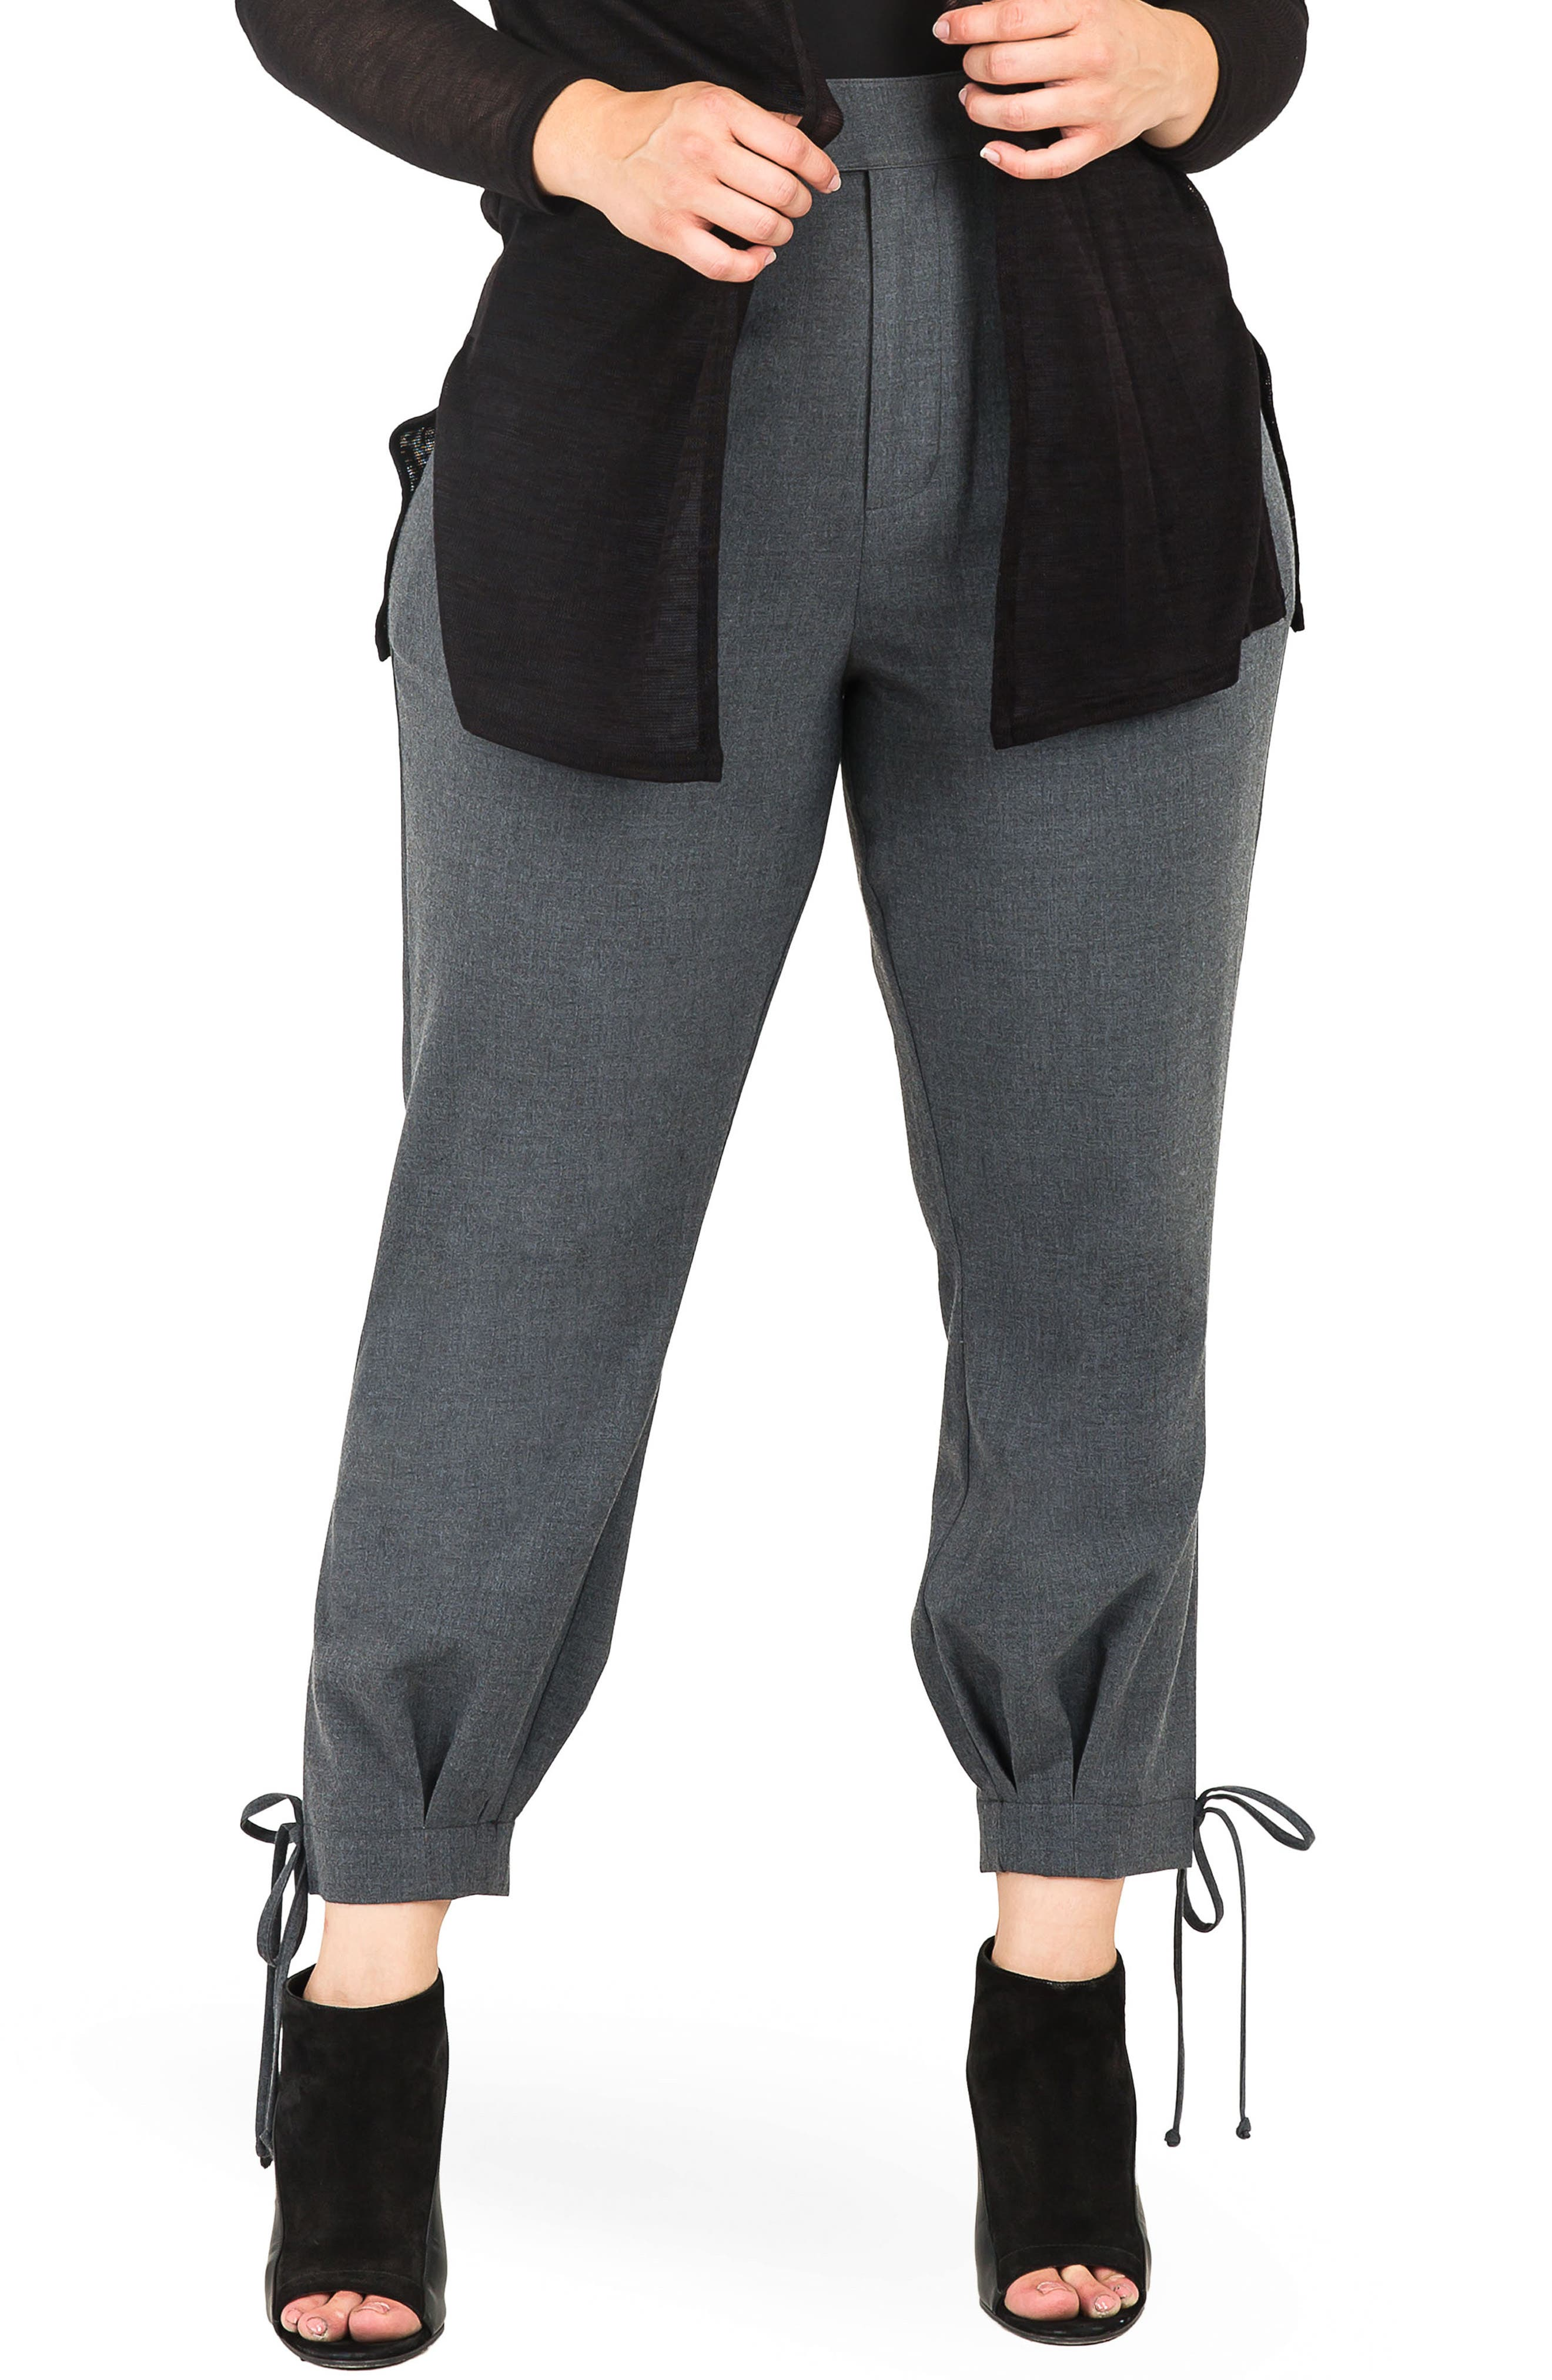 Robie Suiting Skinny Trousers,                             Main thumbnail 1, color,                             CHARCOAL